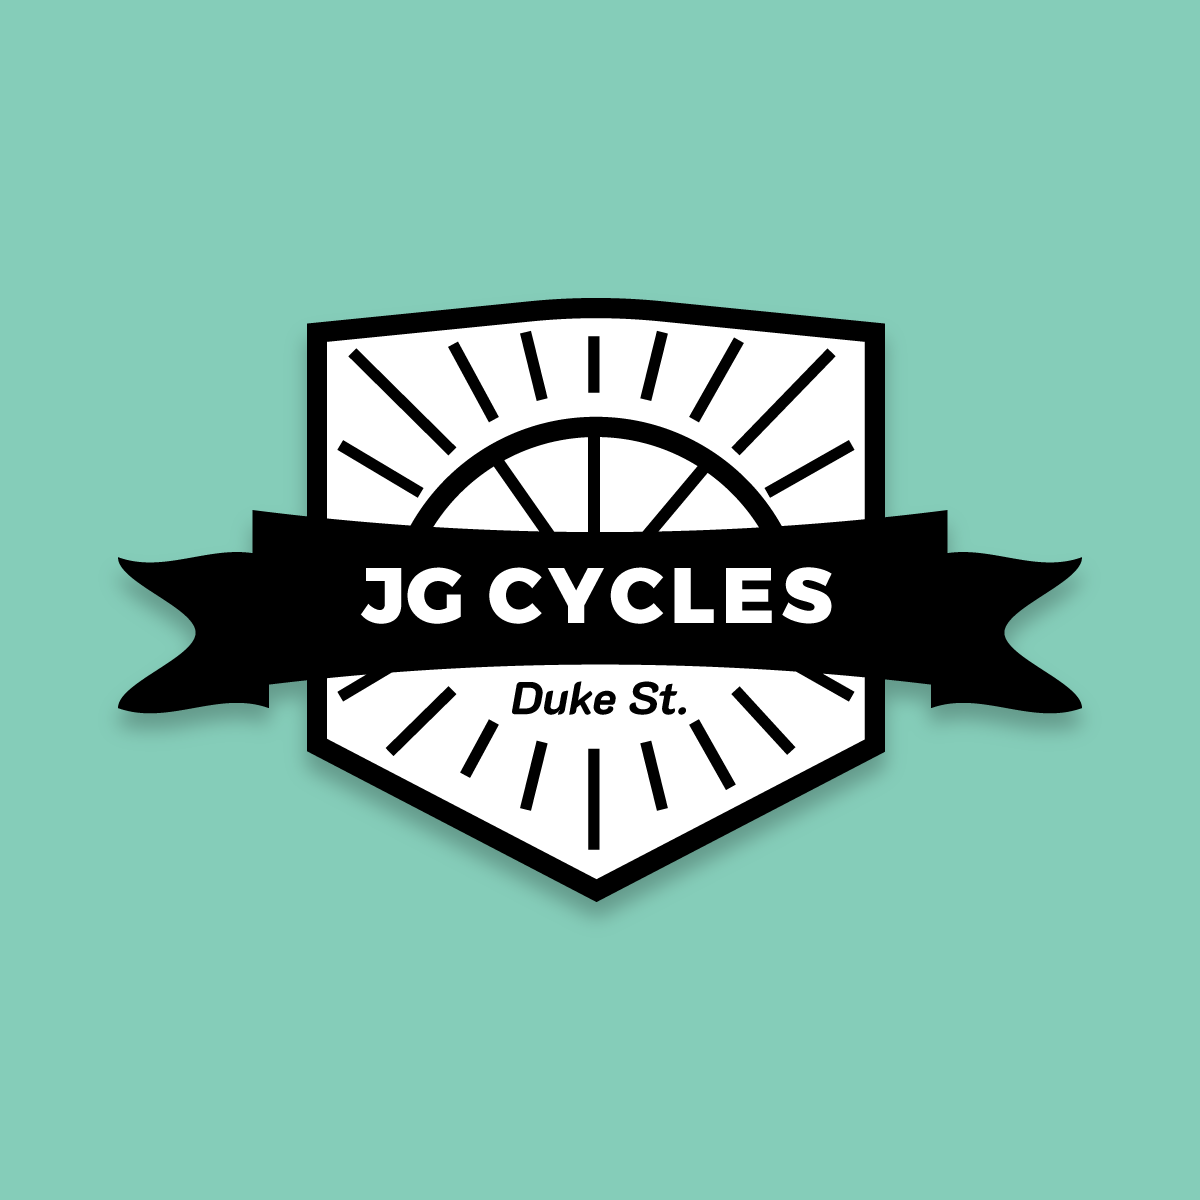 JG Cycles Duke Street